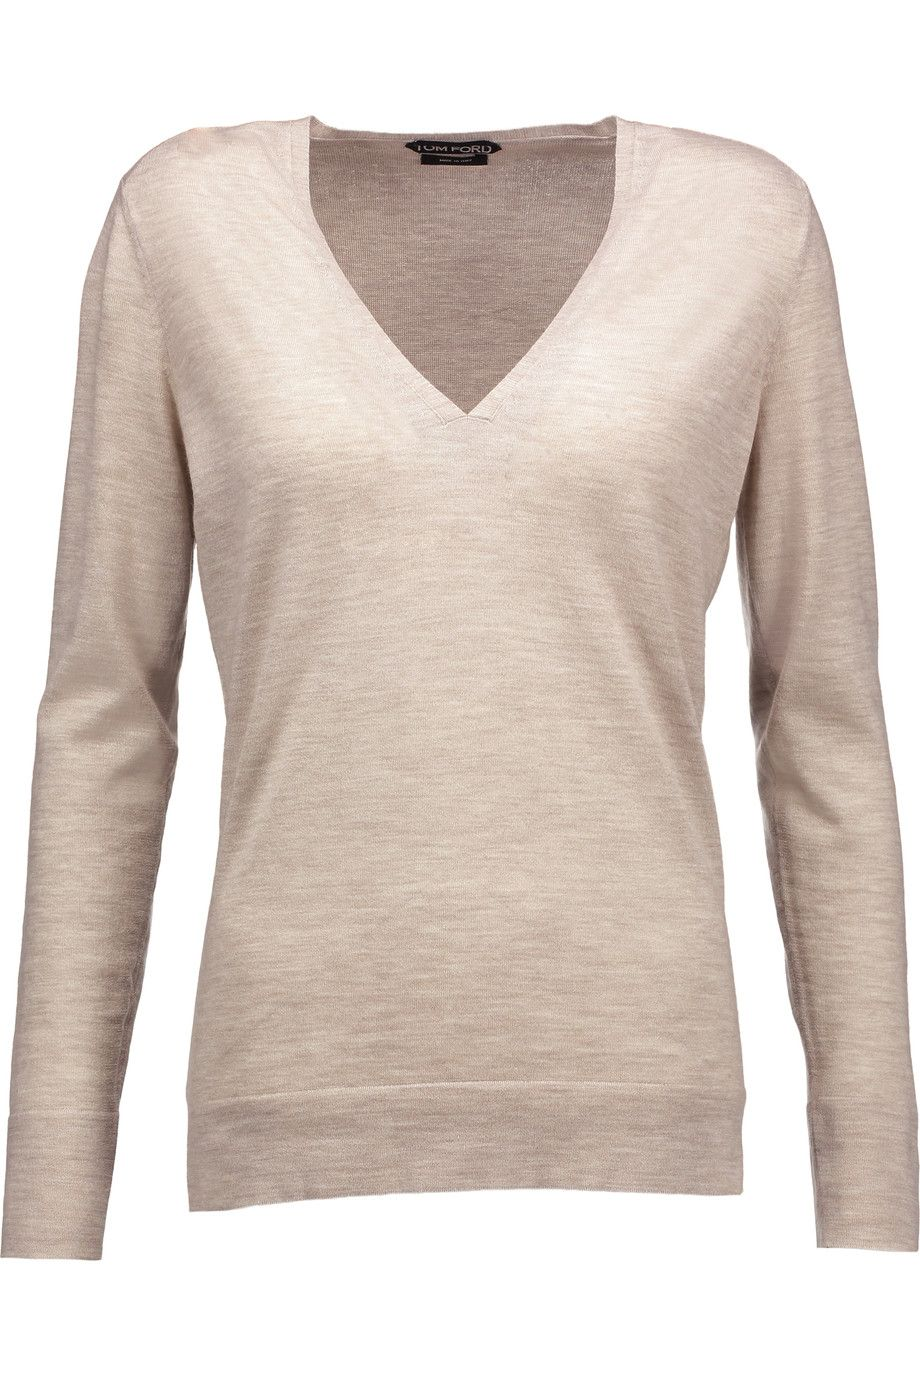 TOM FORD Cashmere sweater. #tomford #cloth #sweater | Tom Ford ...